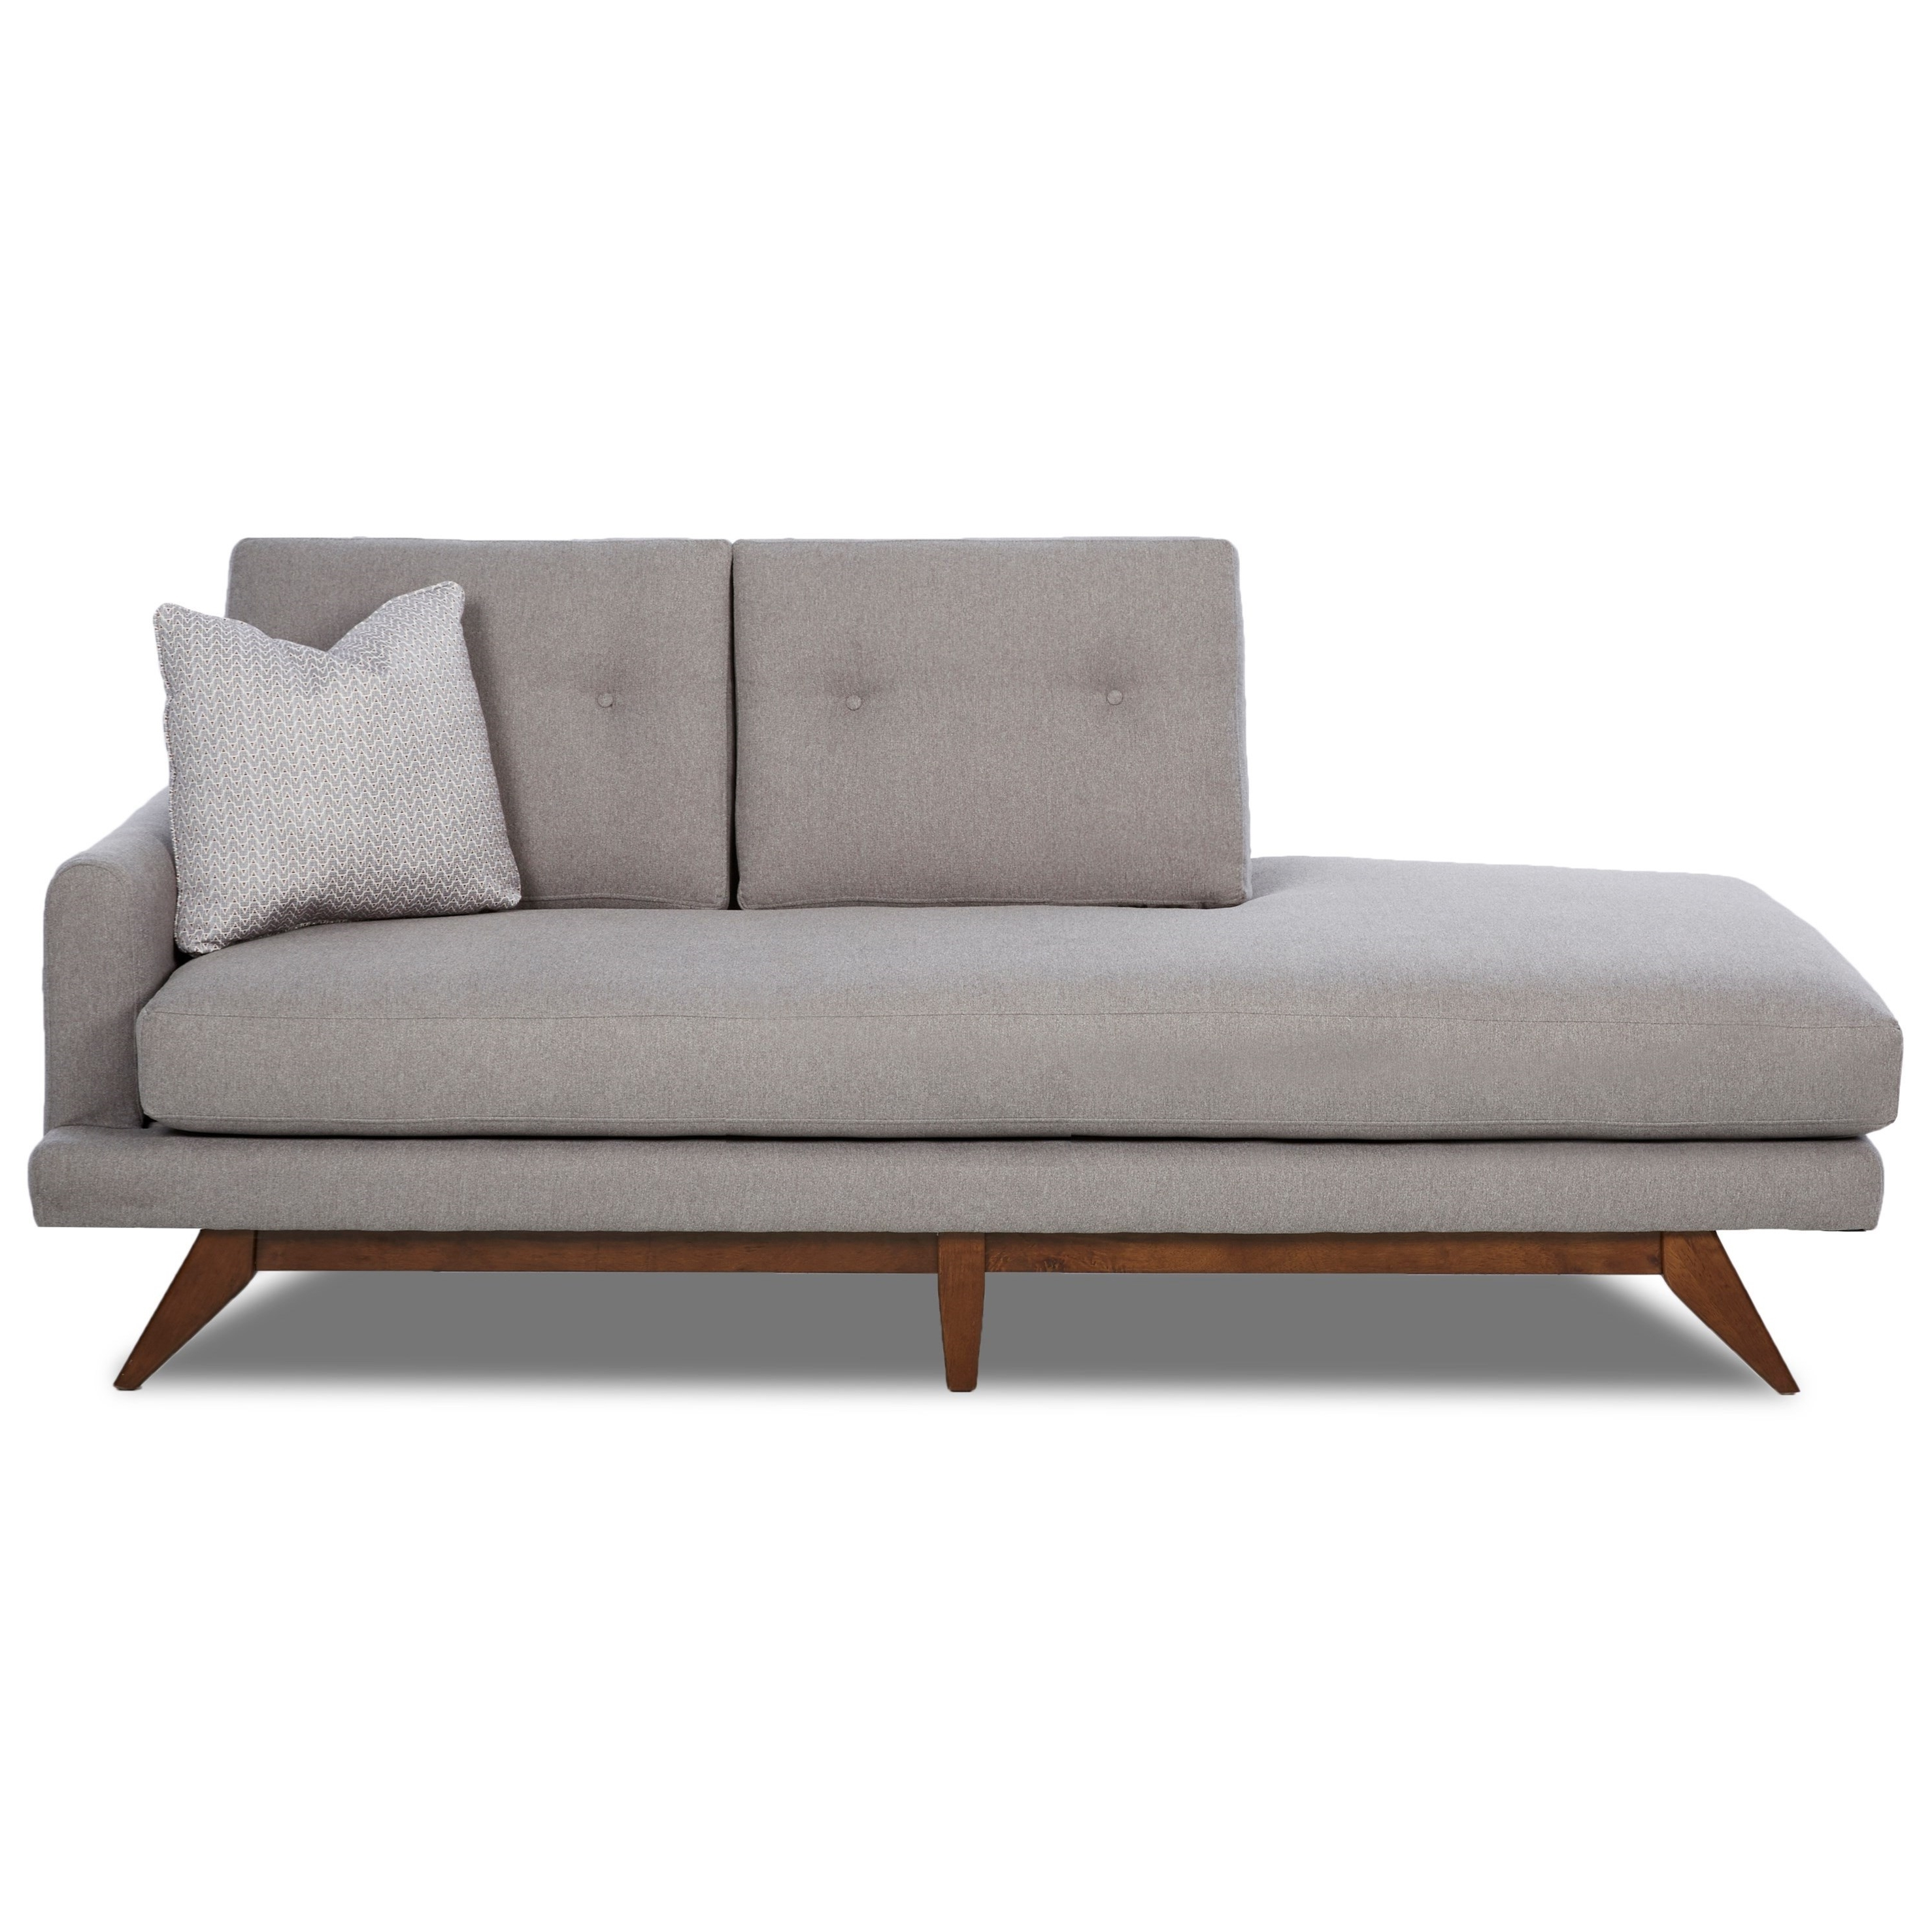 Preferred Mid Century Modern Chaise Lounges Regarding Sofa : Mesmerizing Mid Century Modern Chaise Lounges Sofa Mid (View 14 of 15)